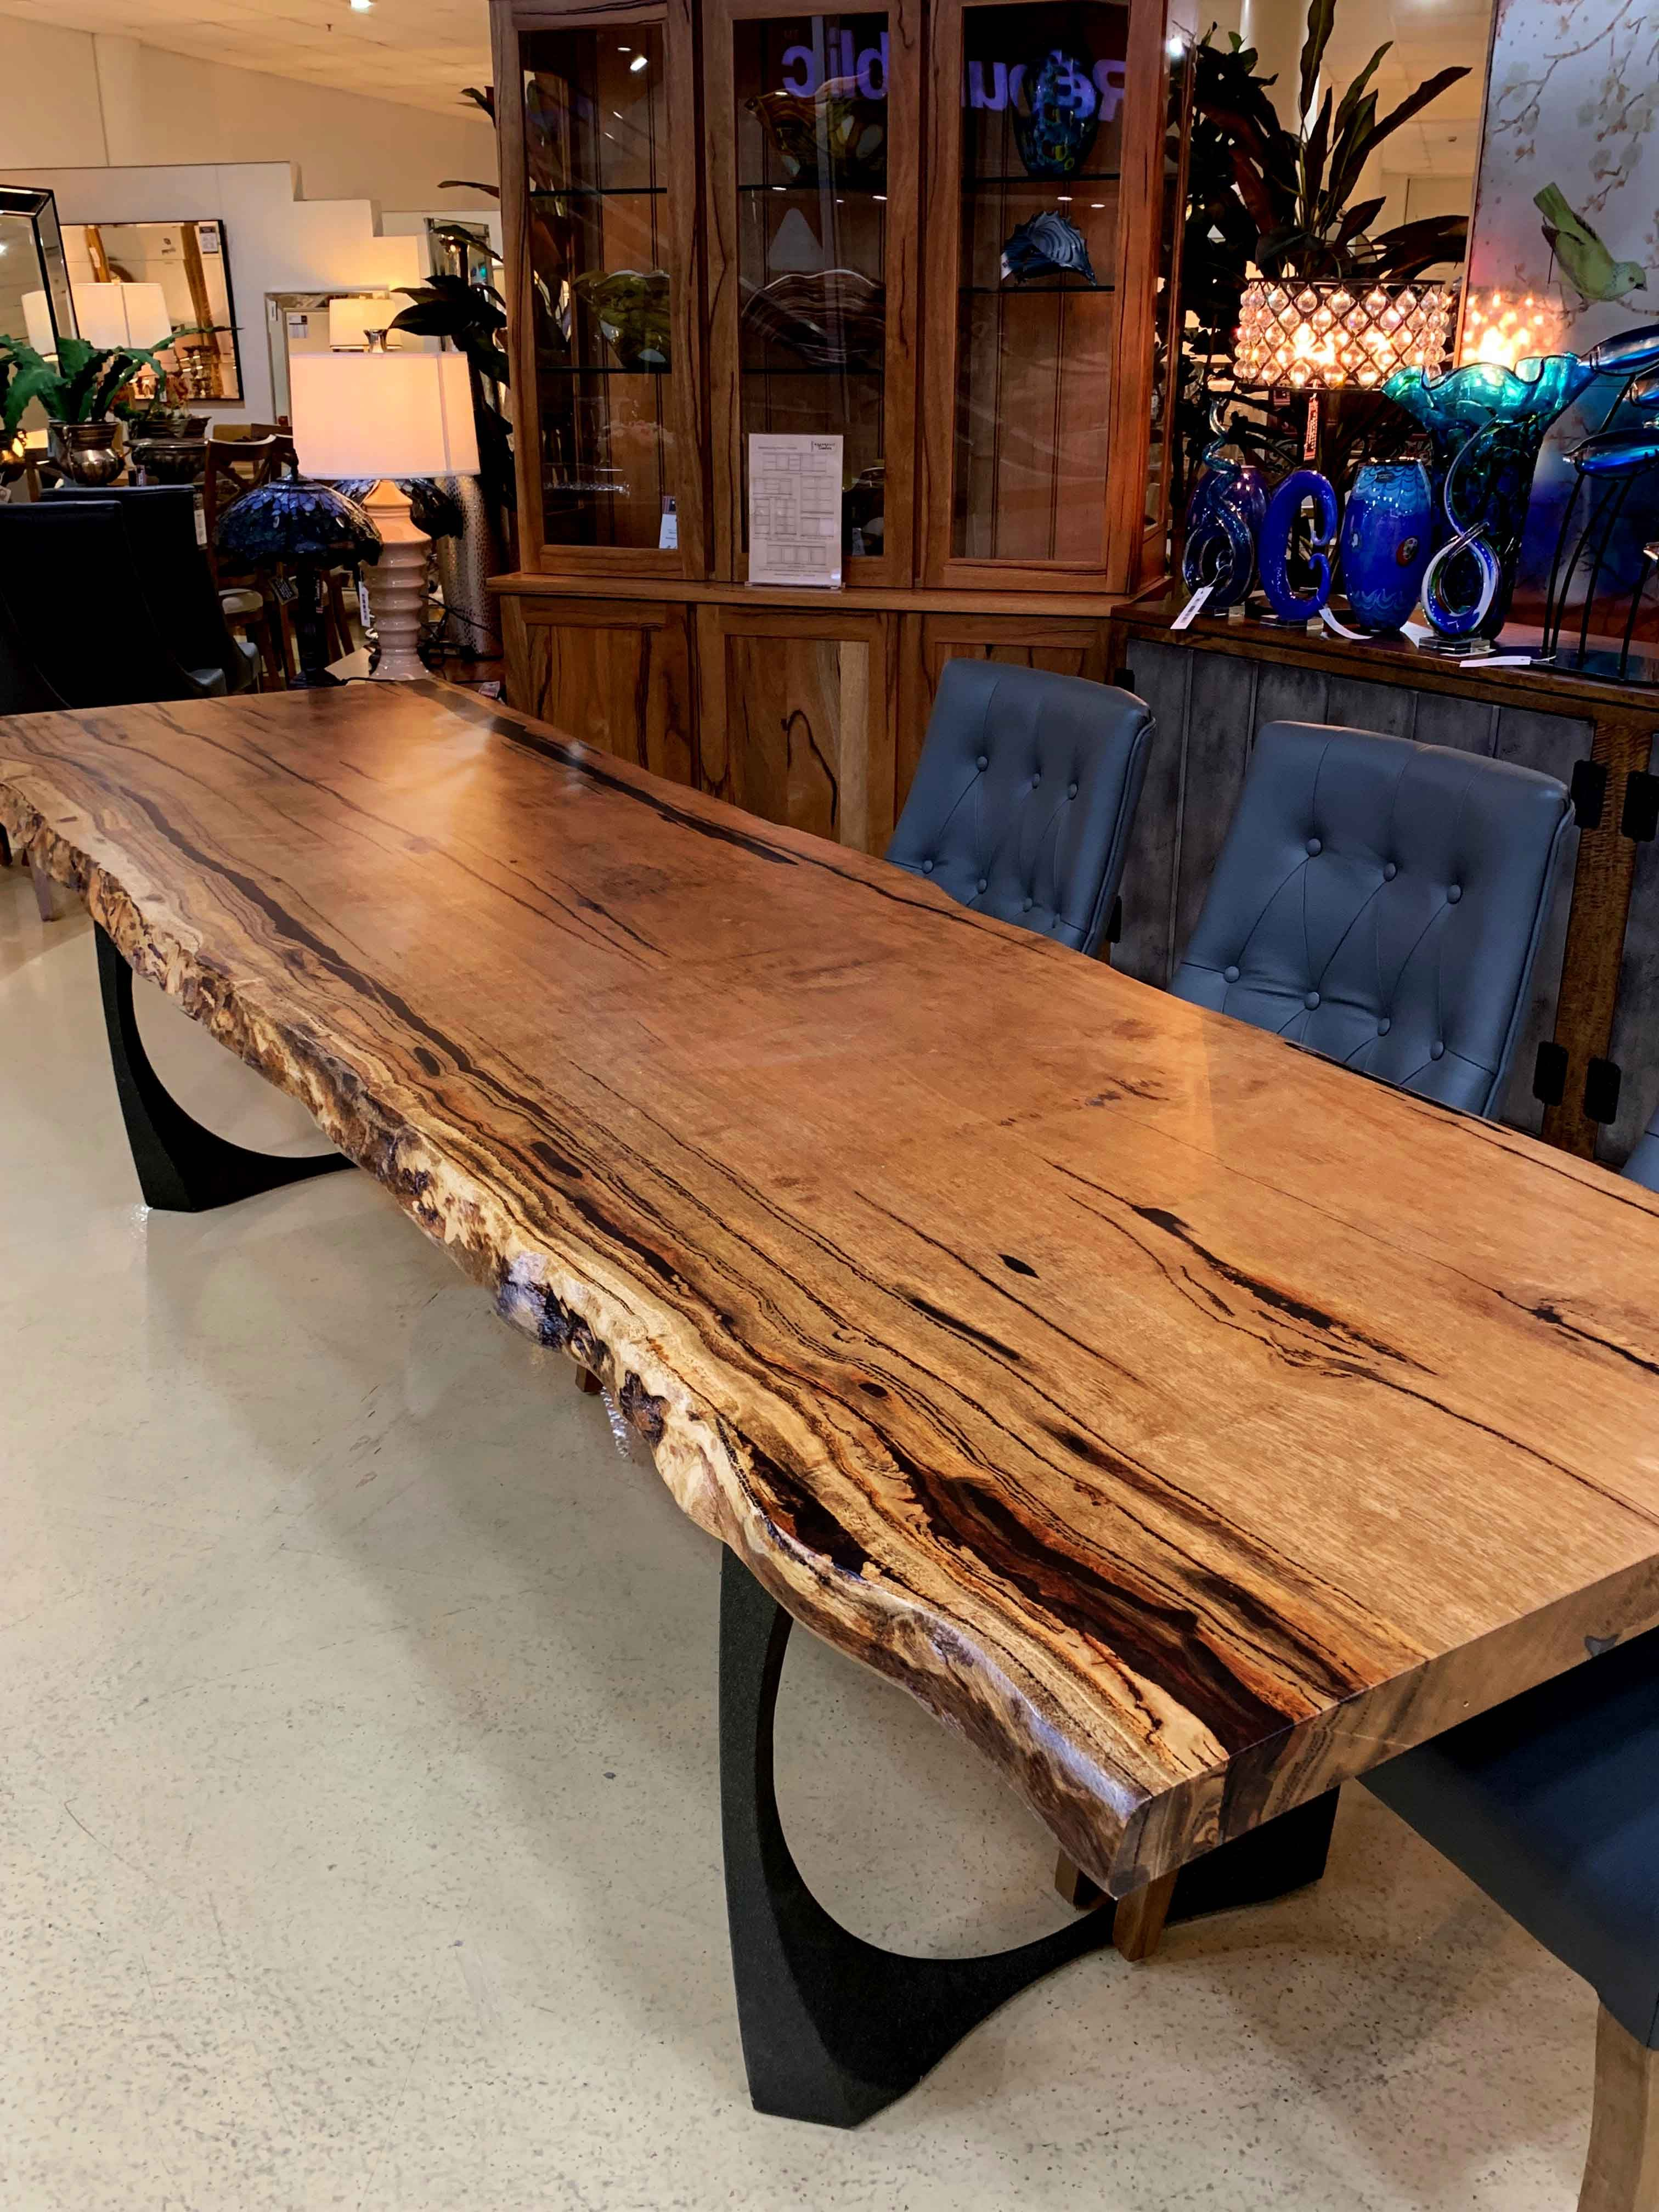 Custom Burl Slab Tables Naturally Timber In 2021 Slab Dining Tables Modern Rustic Dining Table Live Edge Dining Table [ 4032 x 3024 Pixel ]